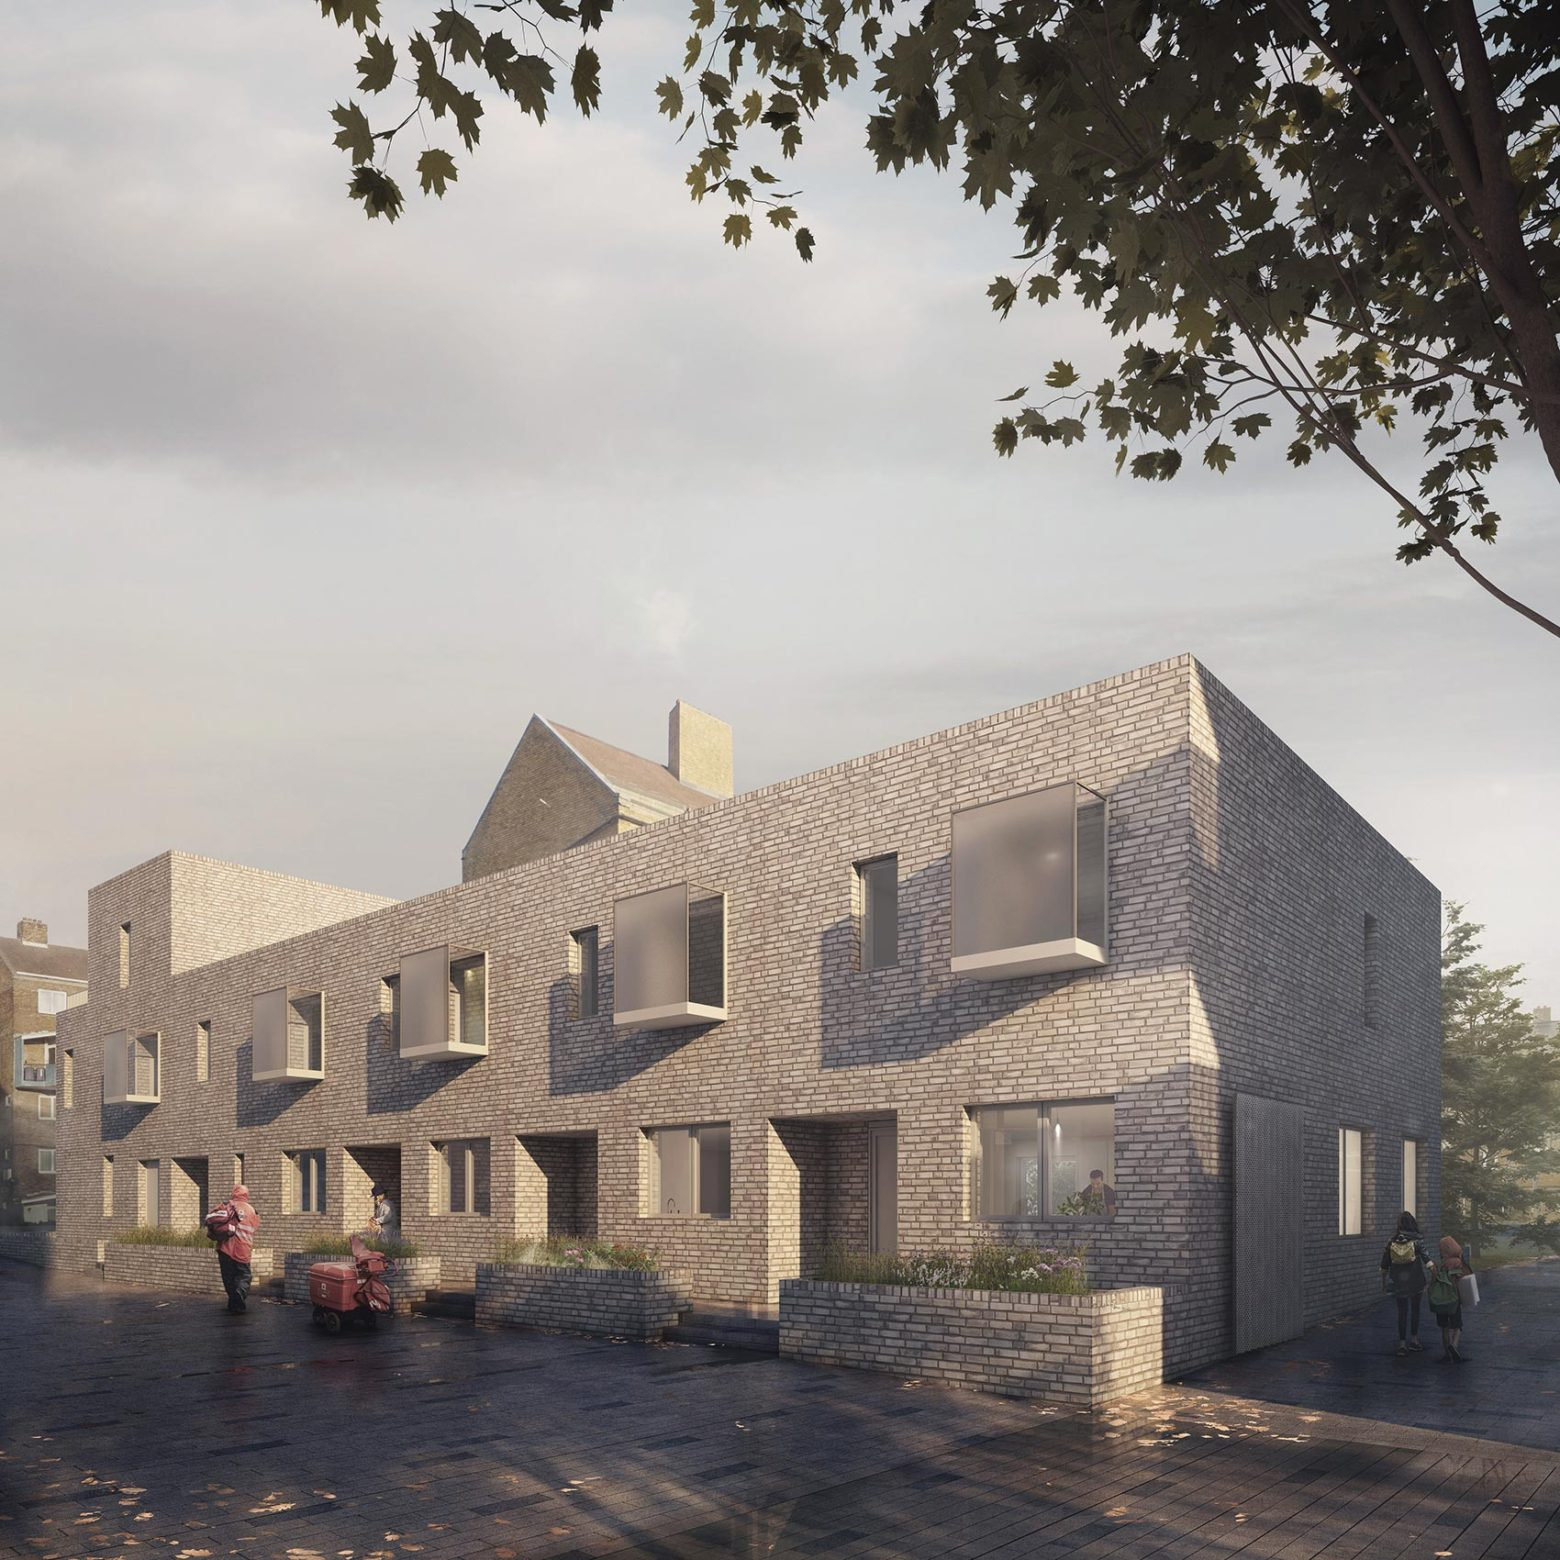 Planning submitted for community-led housing